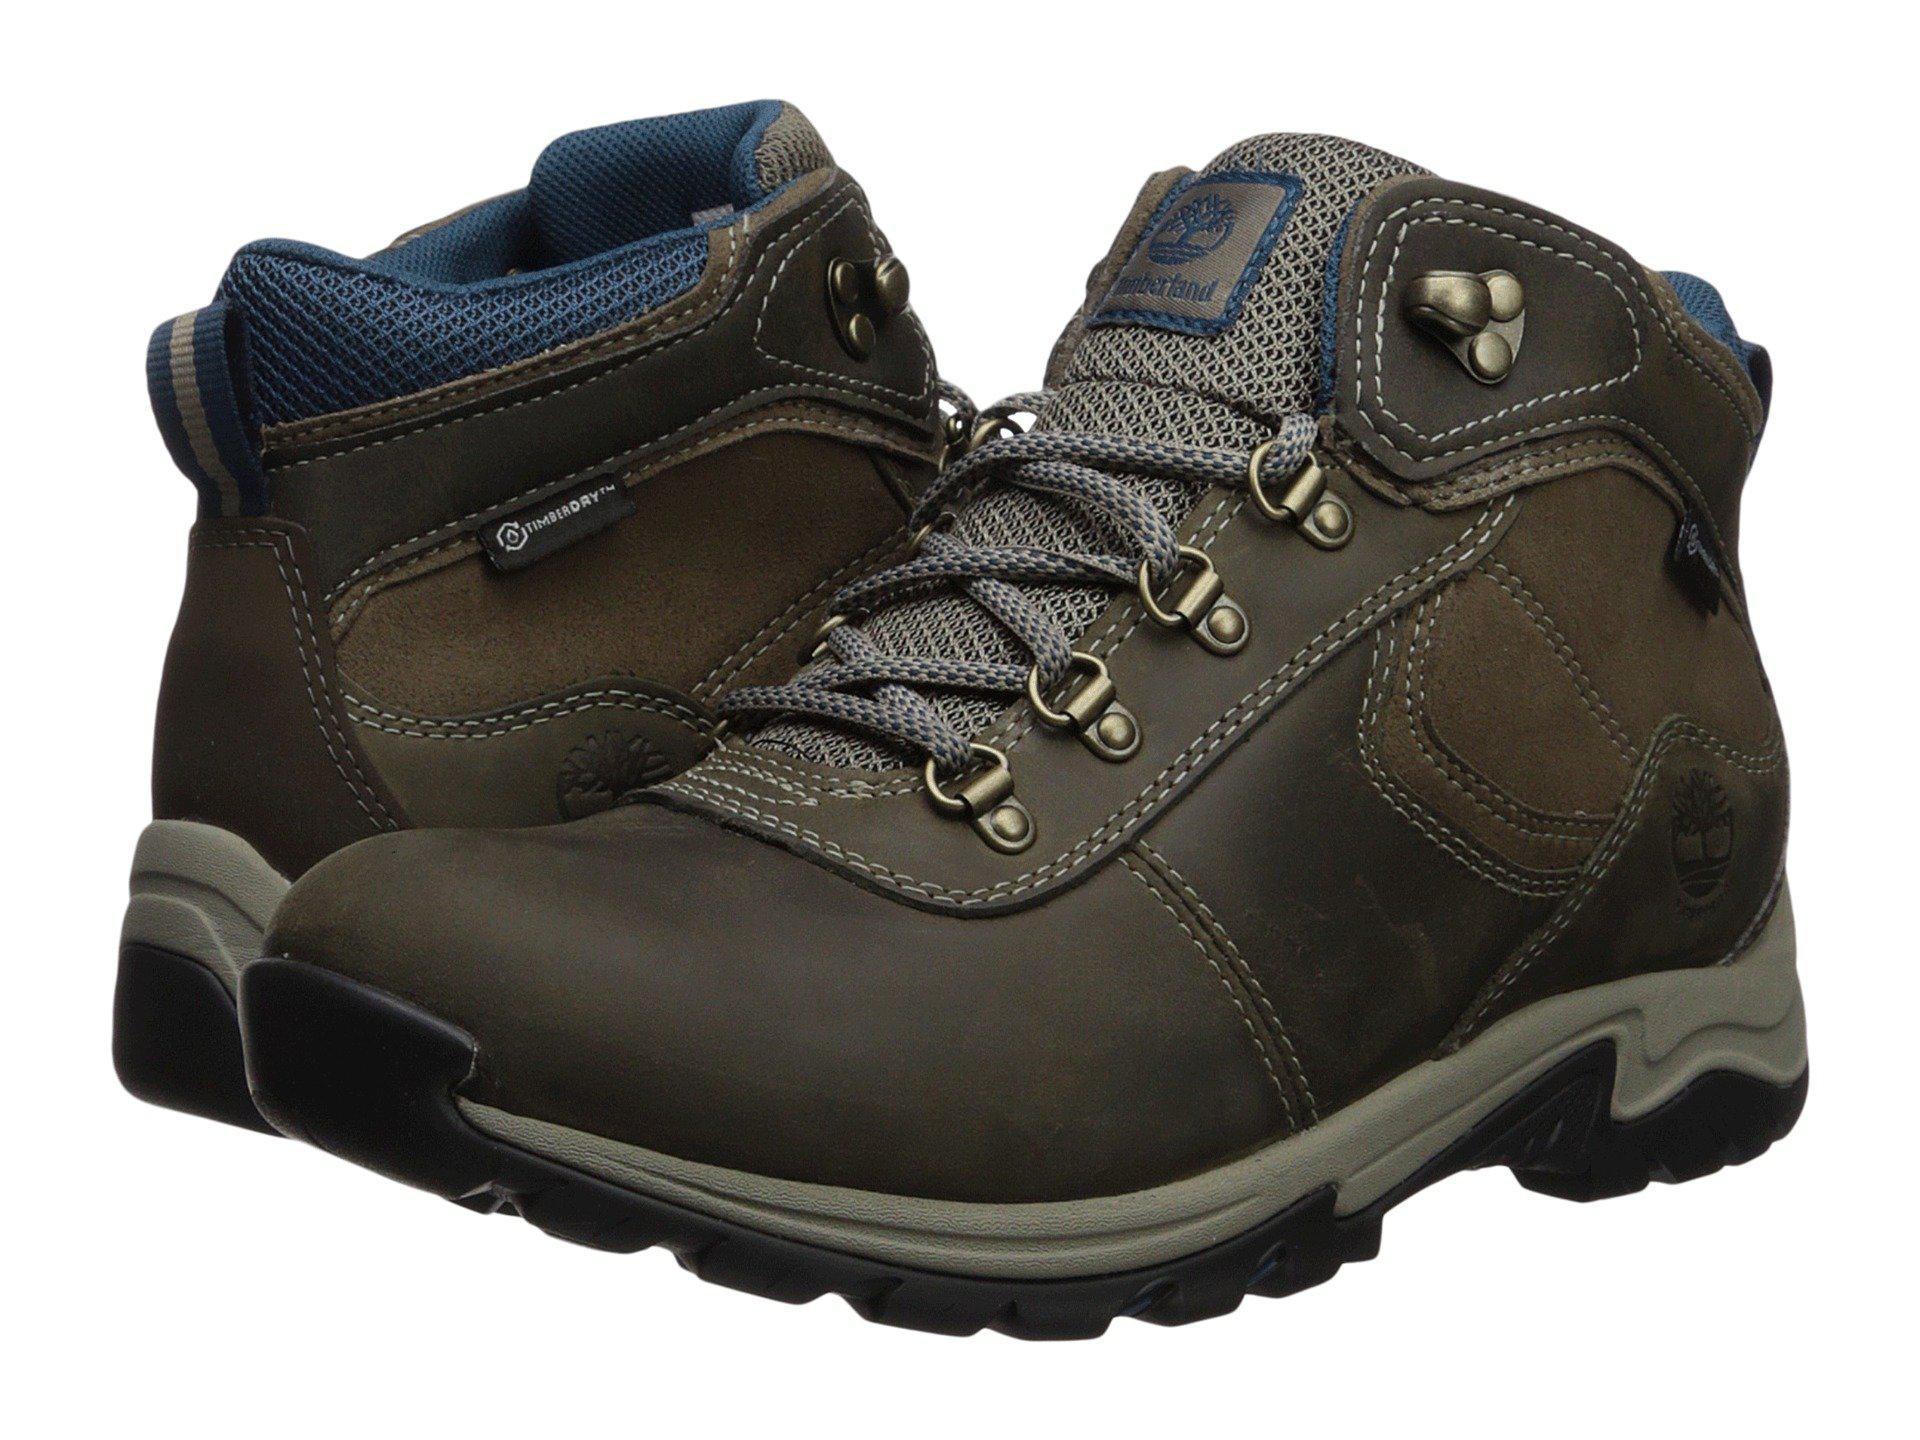 Timberland. Men's Gray Mt. Maddsen Mid Leather Waterproof